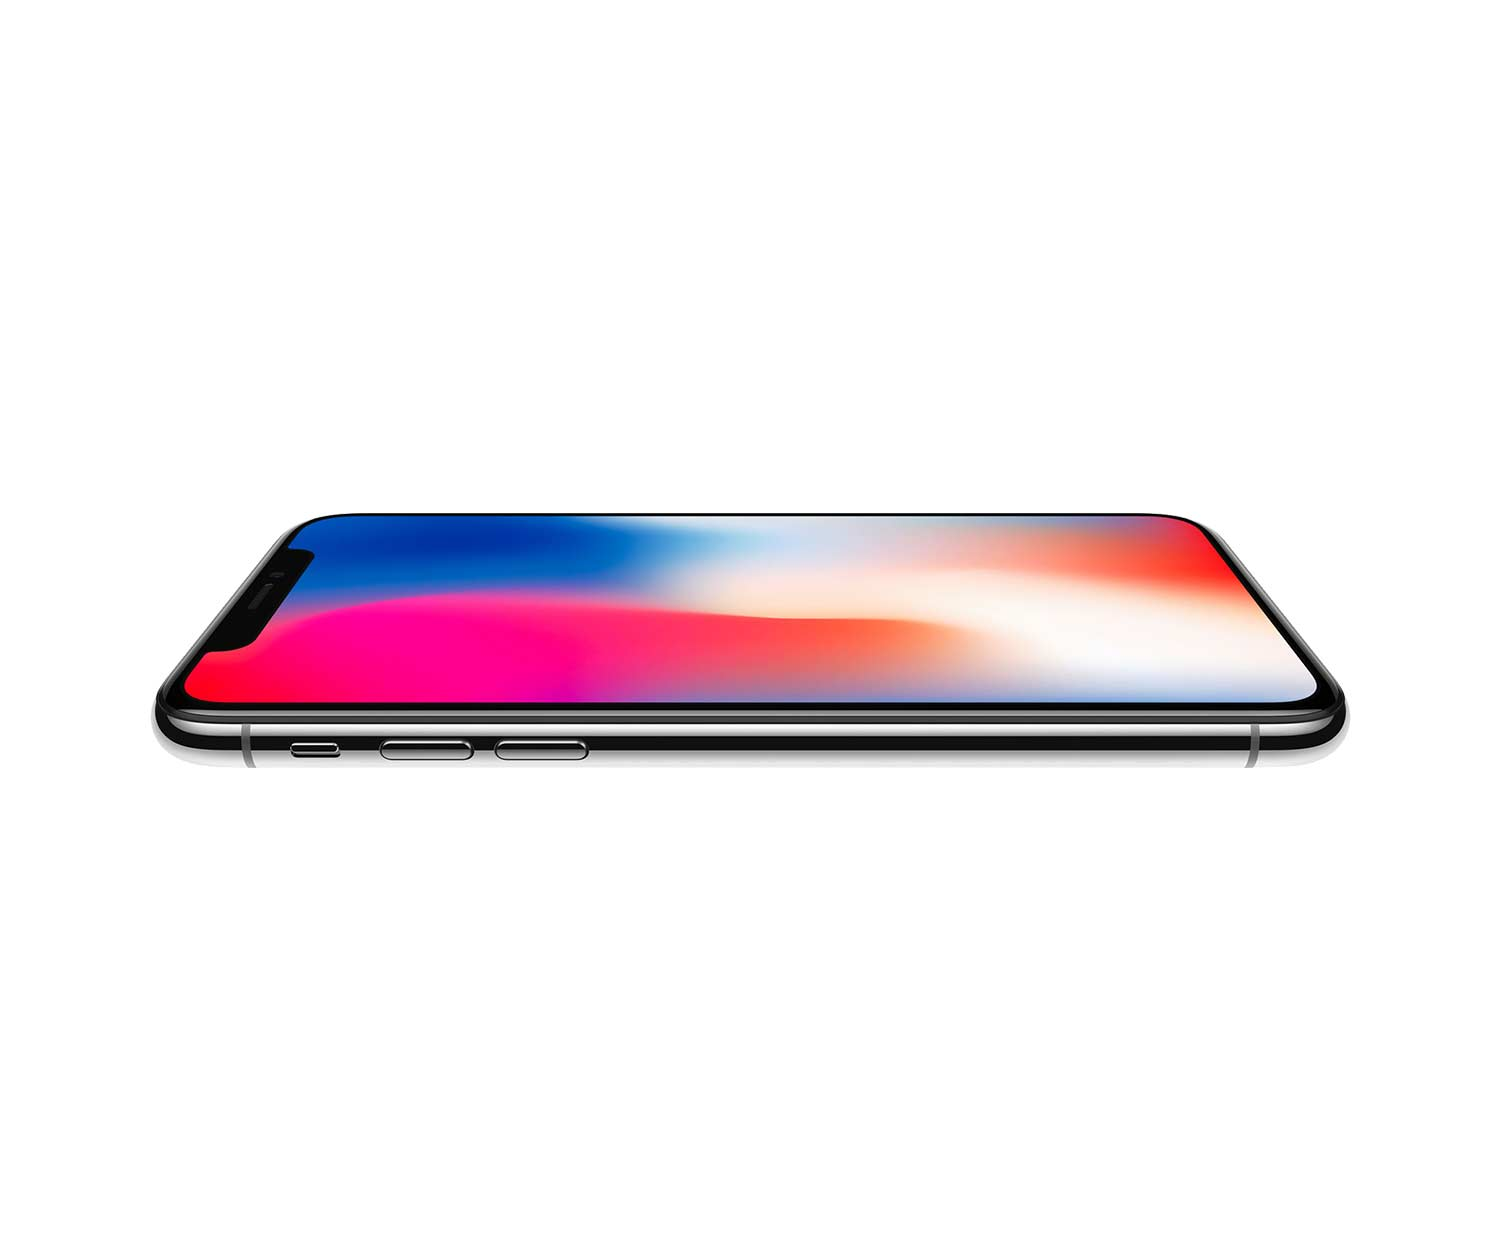 apple iphone x 256 gb space grau. Black Bedroom Furniture Sets. Home Design Ideas